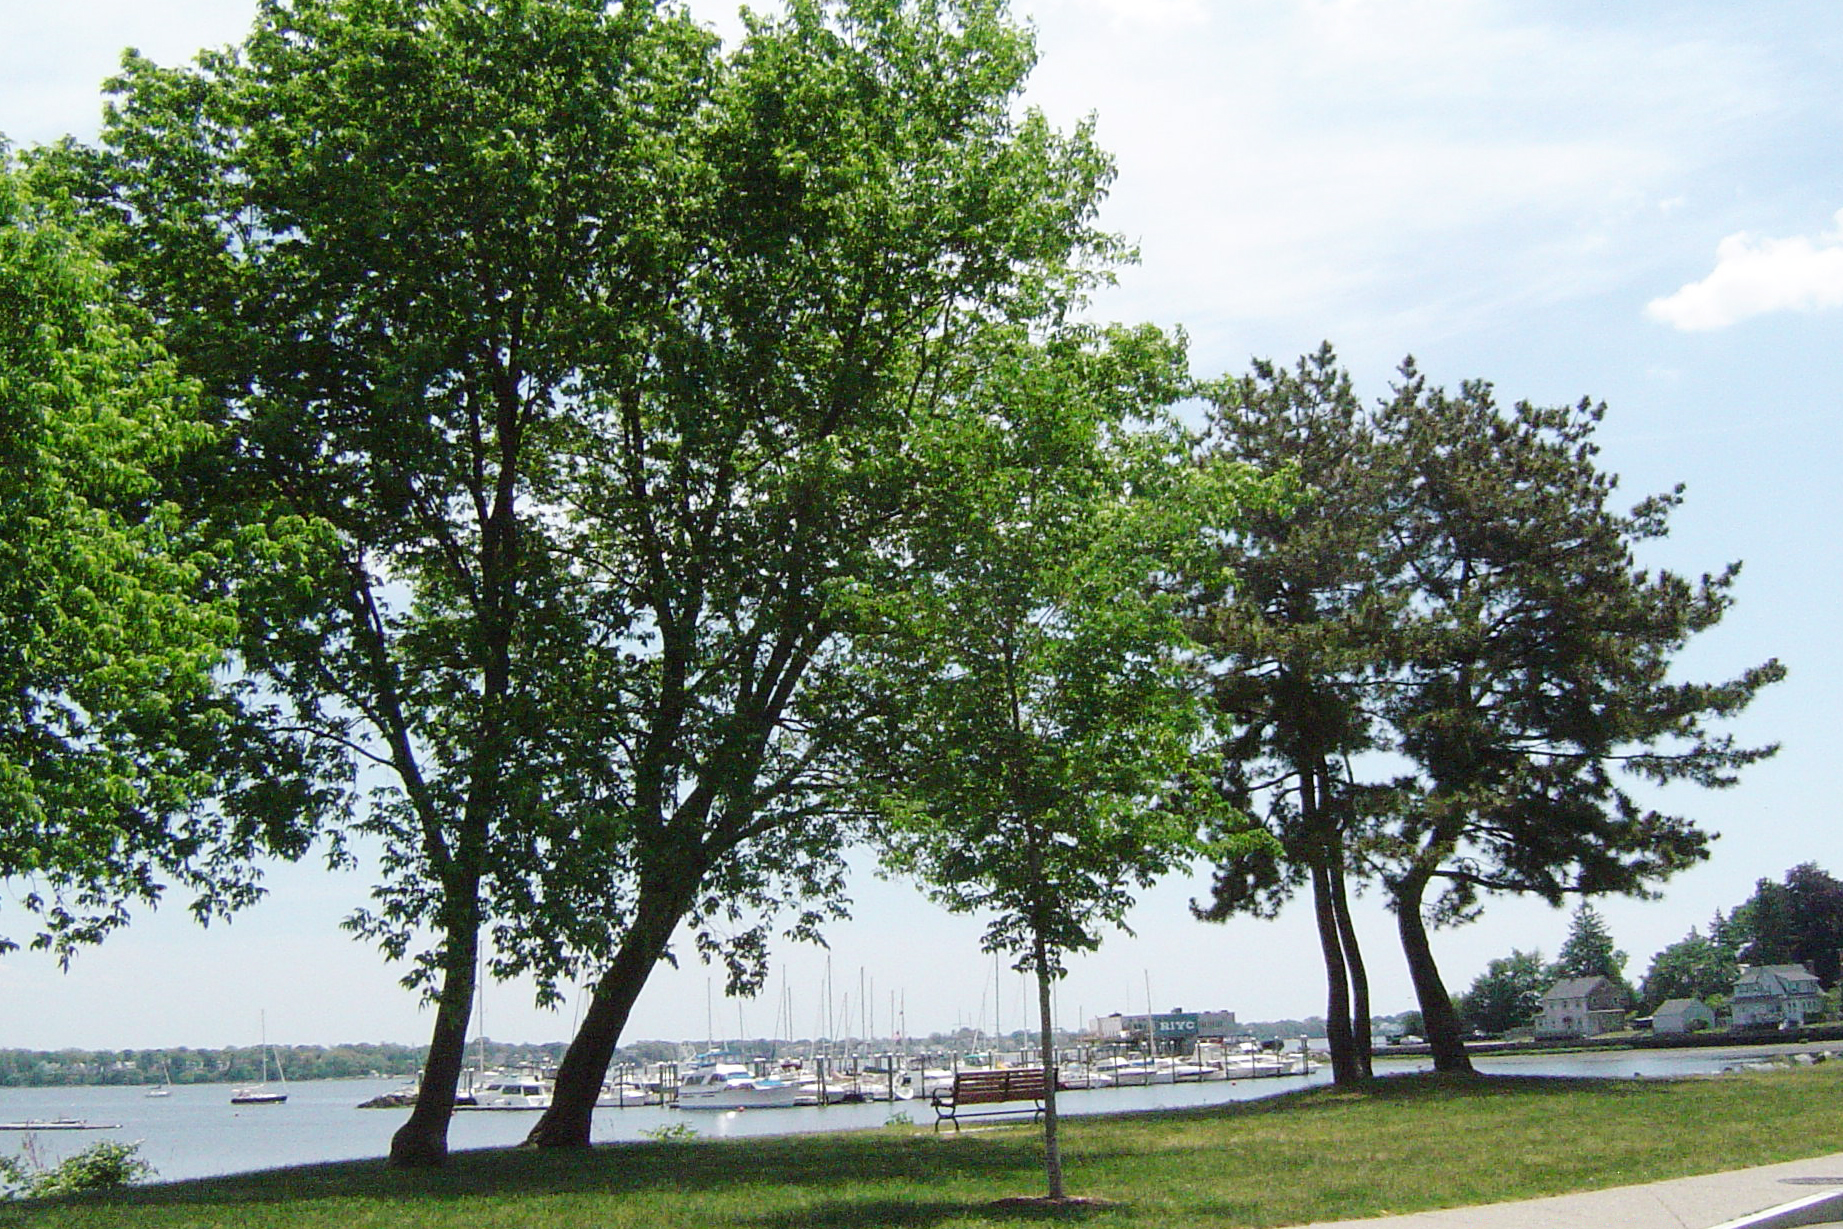 <strong>Cranston, Rhode Island.</strong> This city south of Providence shares the Narragansett Bay and is home to Pawtuxet Village, an emerging foodie destination.